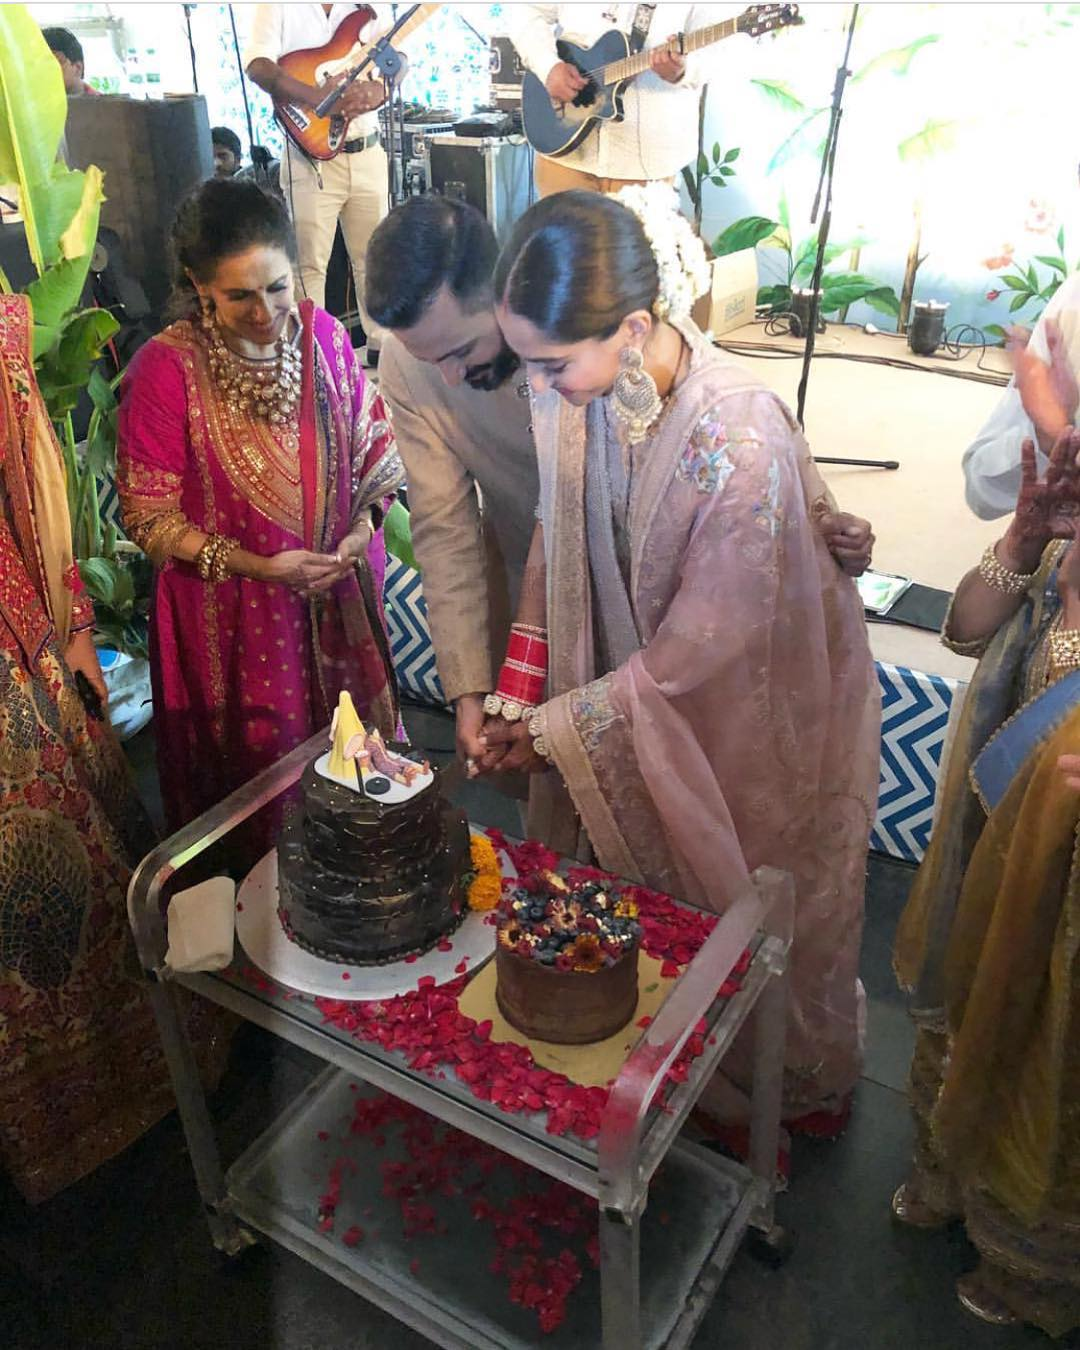 33 Sonam Kapoor Wedding Pics - Engagement and Complete Wedding Pictures